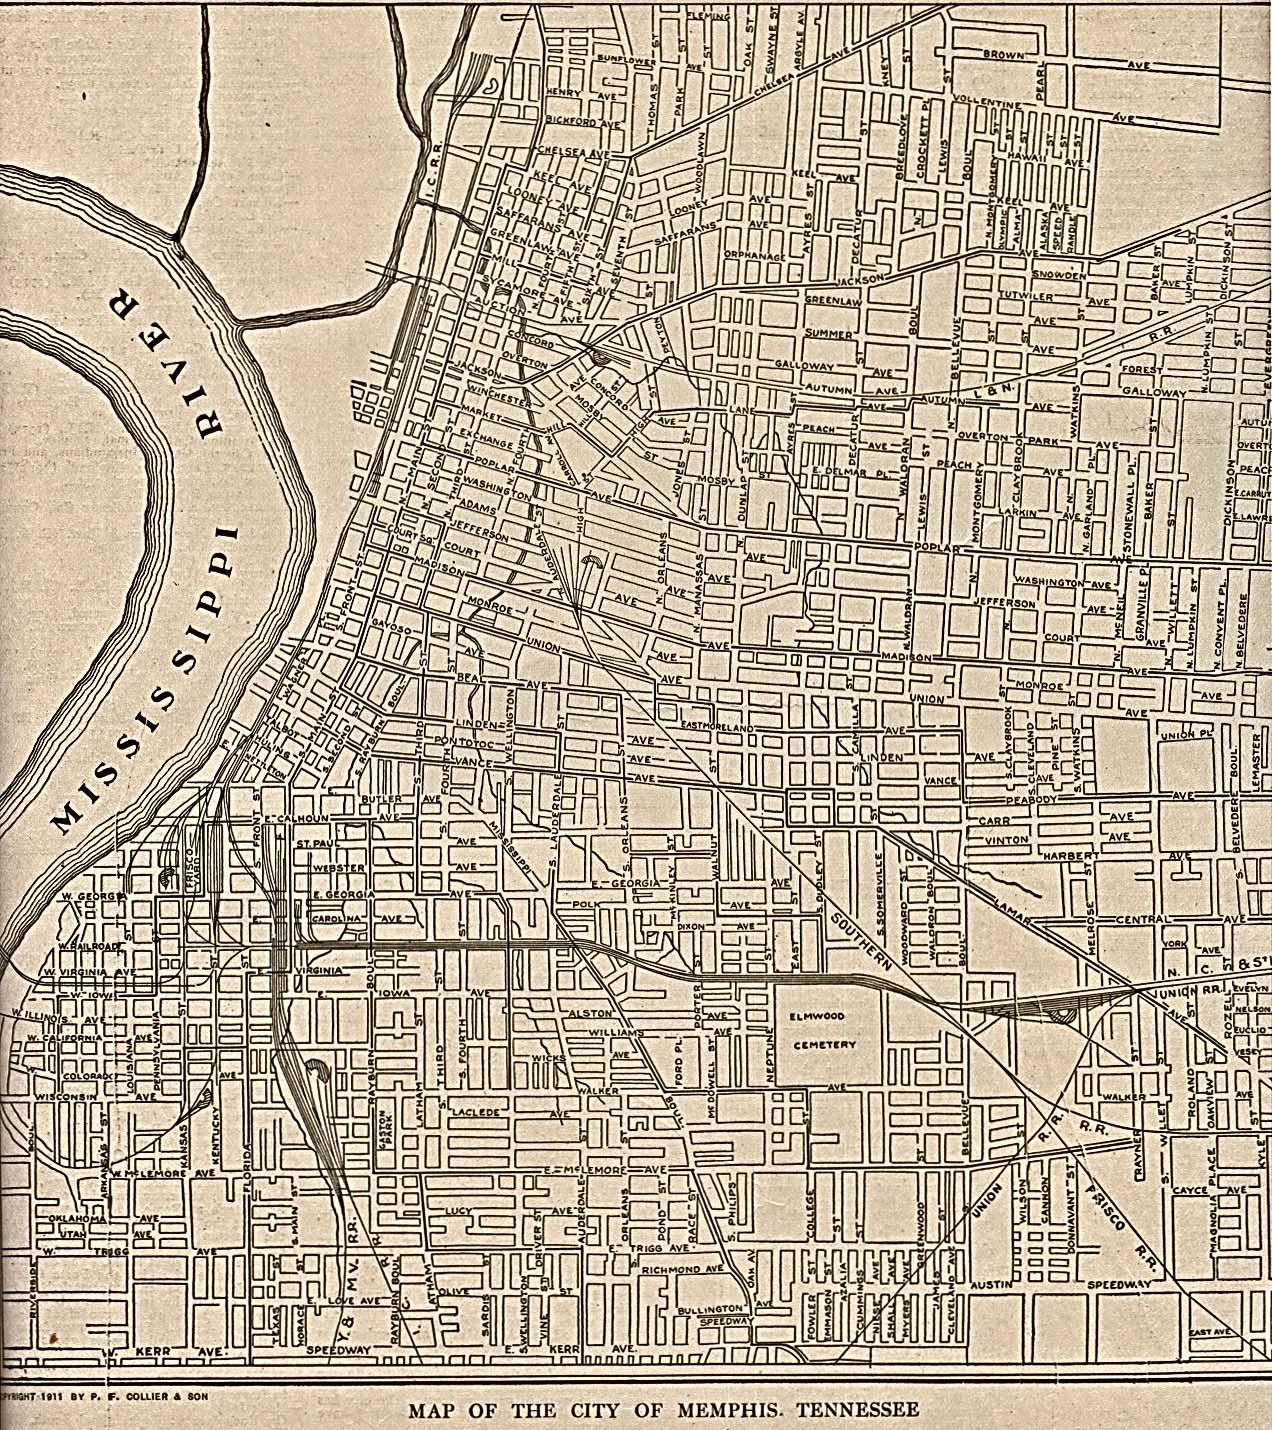 Memphis Tennessee 1911 The New Encyclopedic Atlas and Gazetteer of